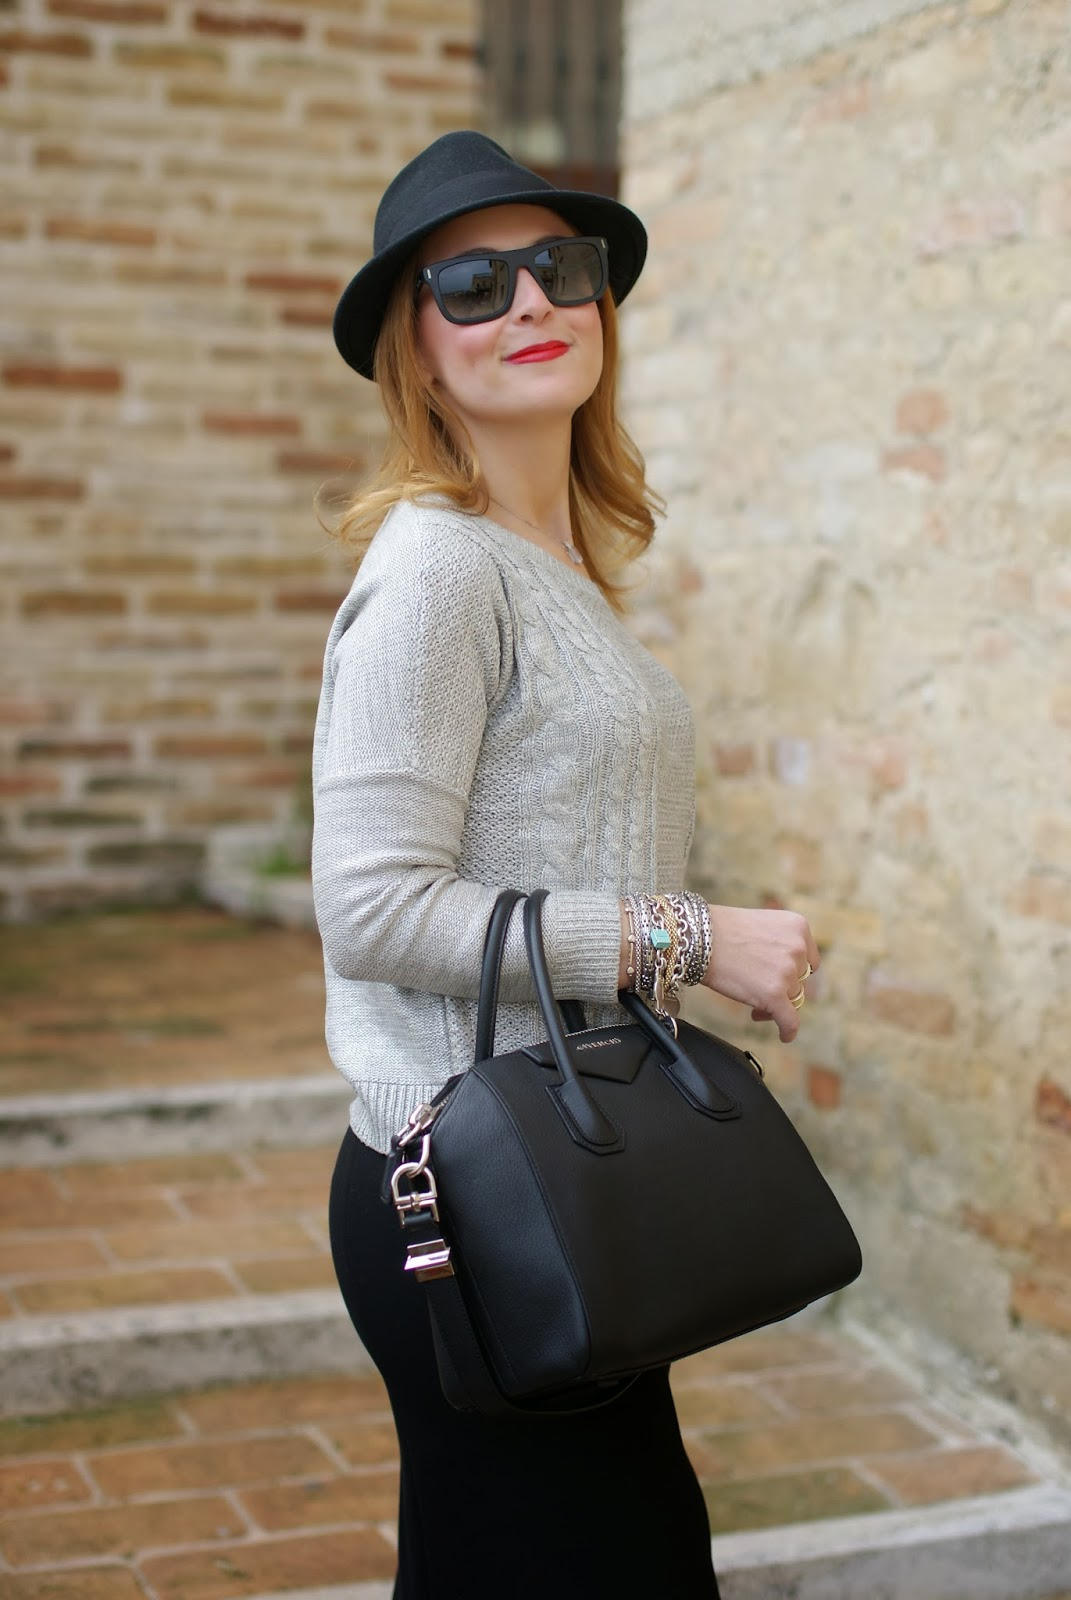 Zara zipper skirt, H&M fedora hat, Givenchy Antigona bag, Fashion and Cookies, fashion blogger